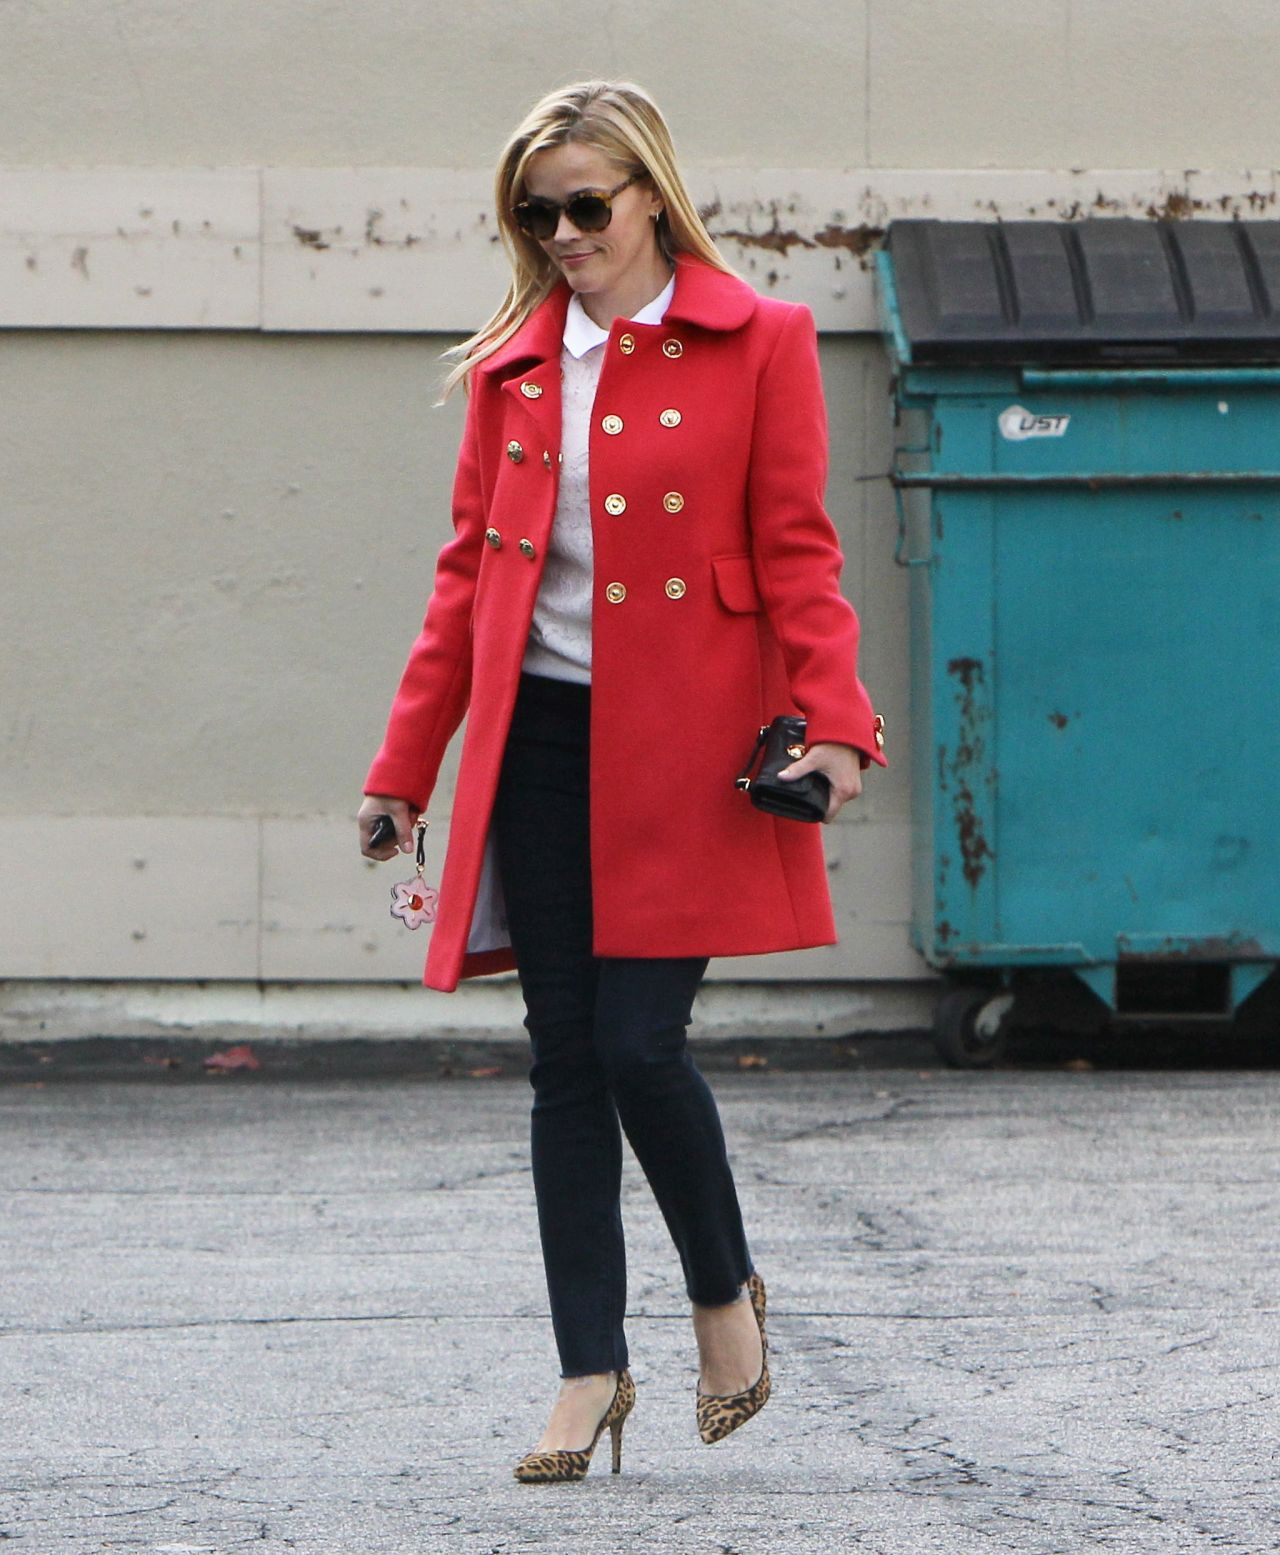 Reese Witherspoon In Draper James Coat Out In Beverly Hills Fashionsizzle